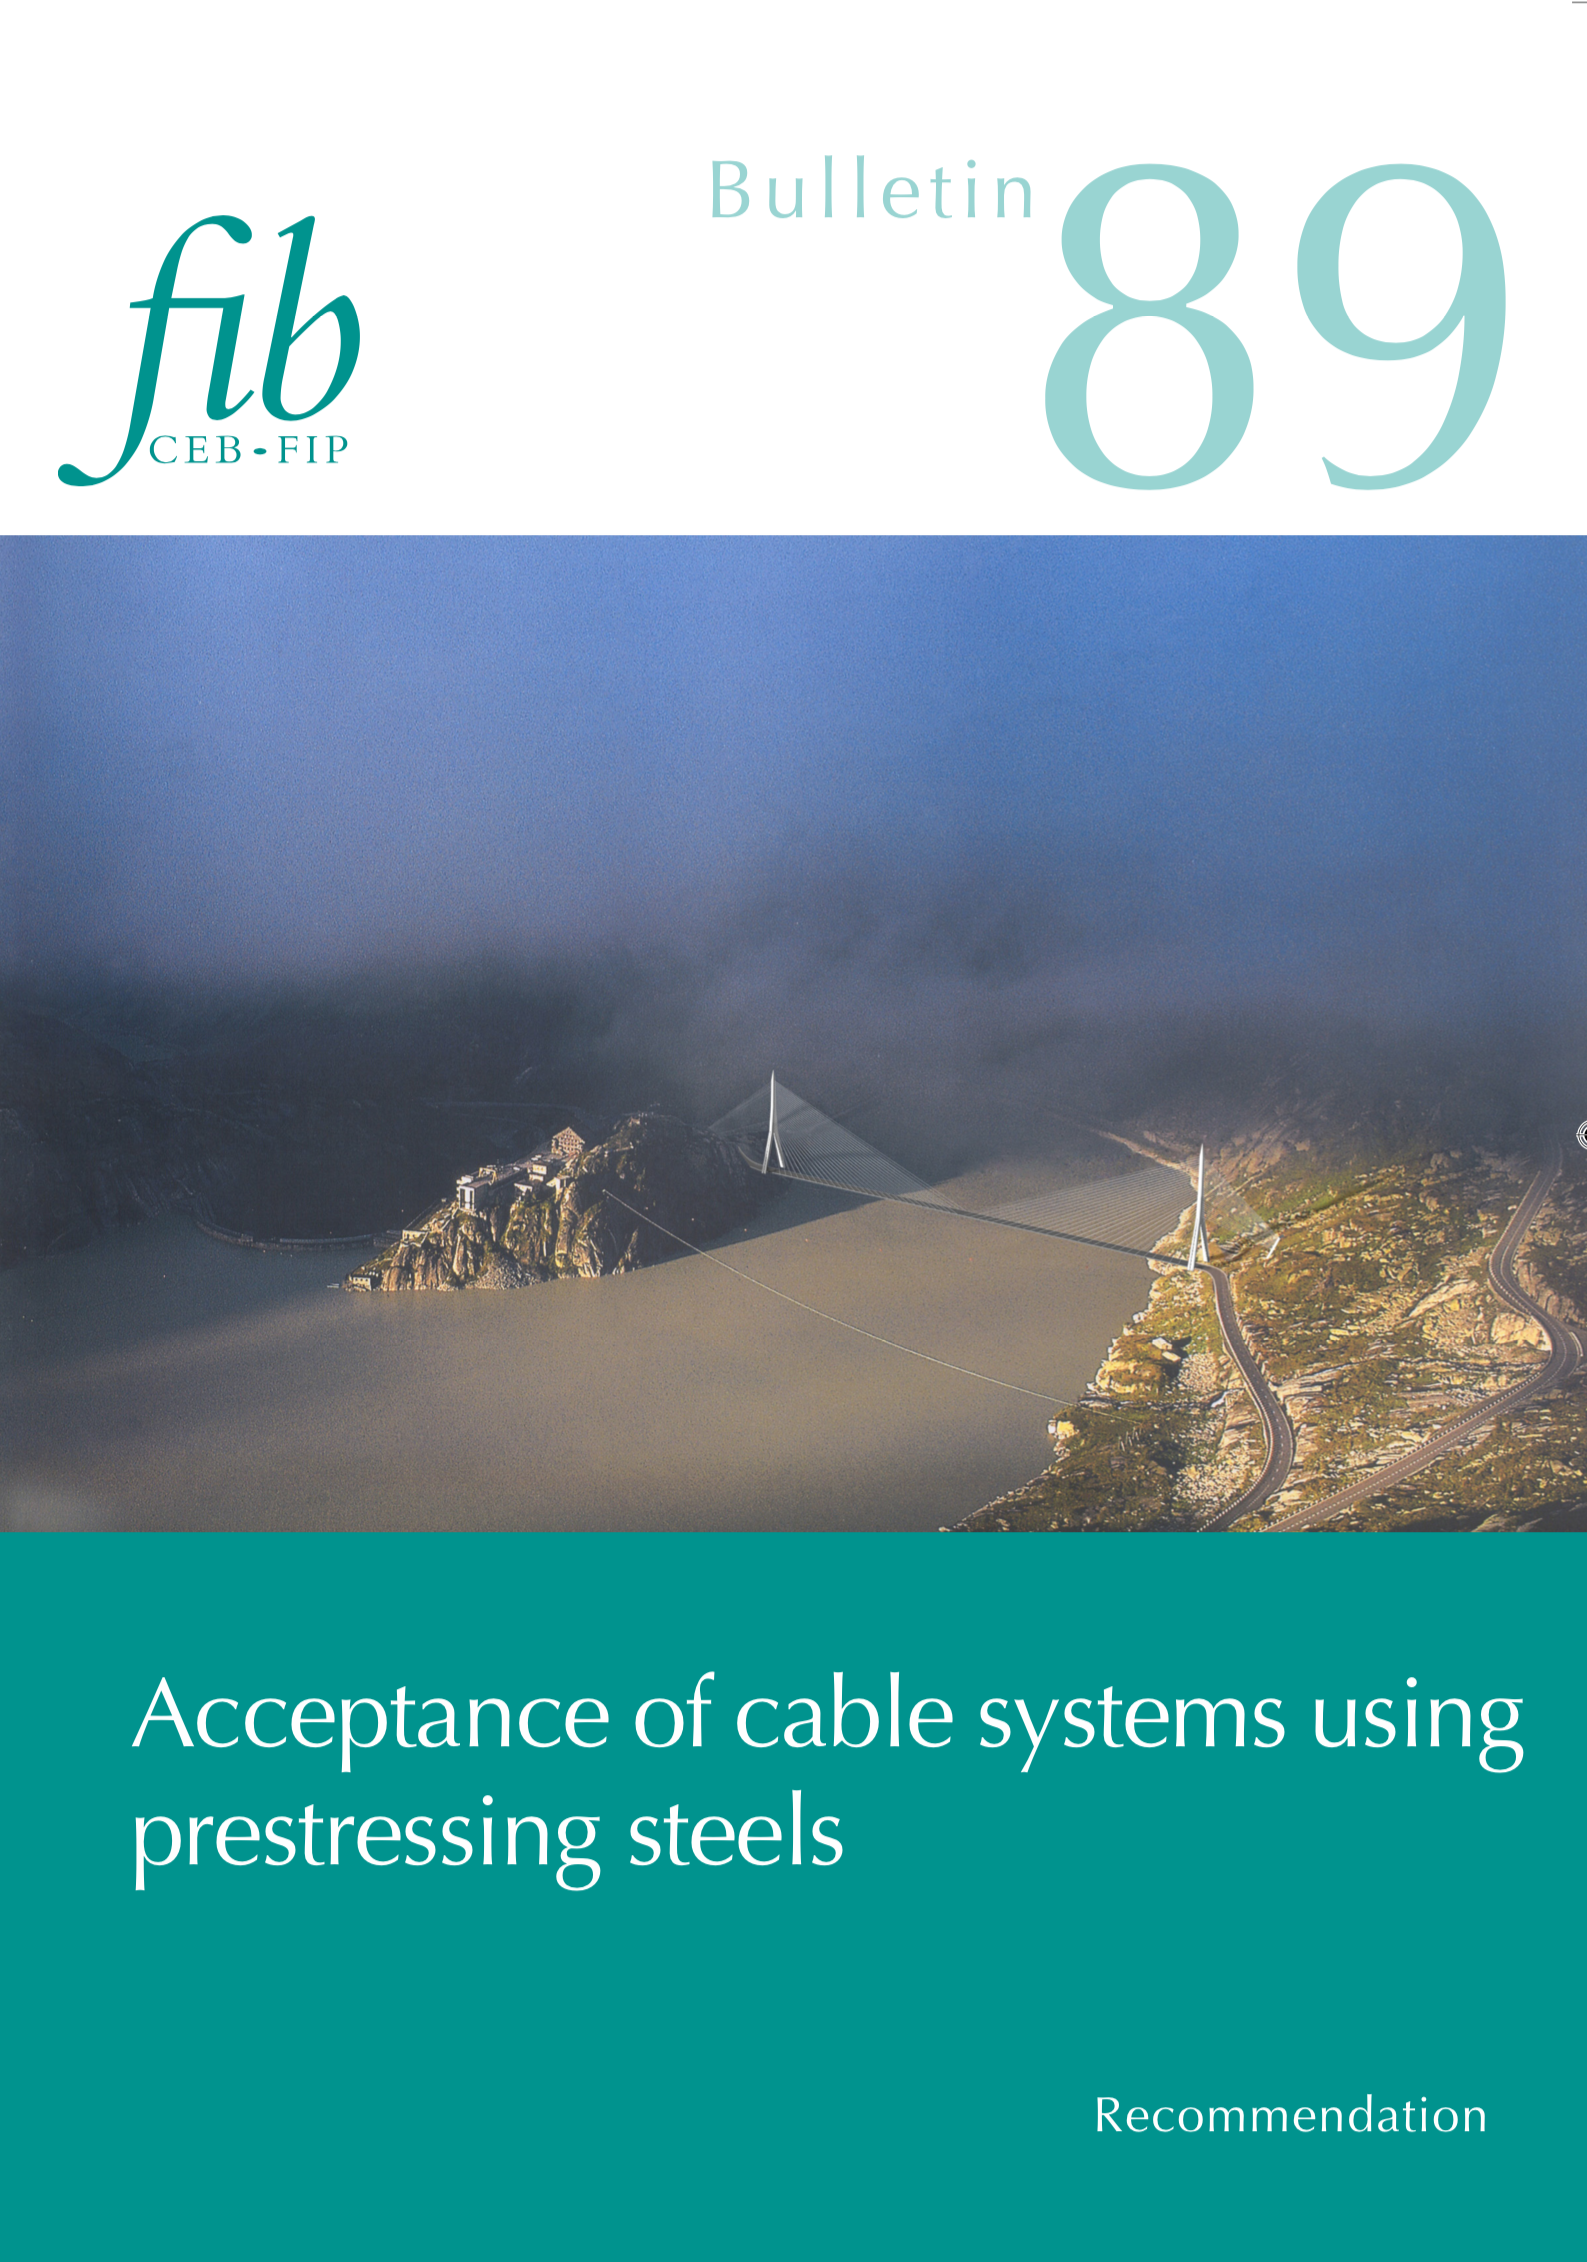 Acceptance of stay cable systems using prestressing steels (PDF)